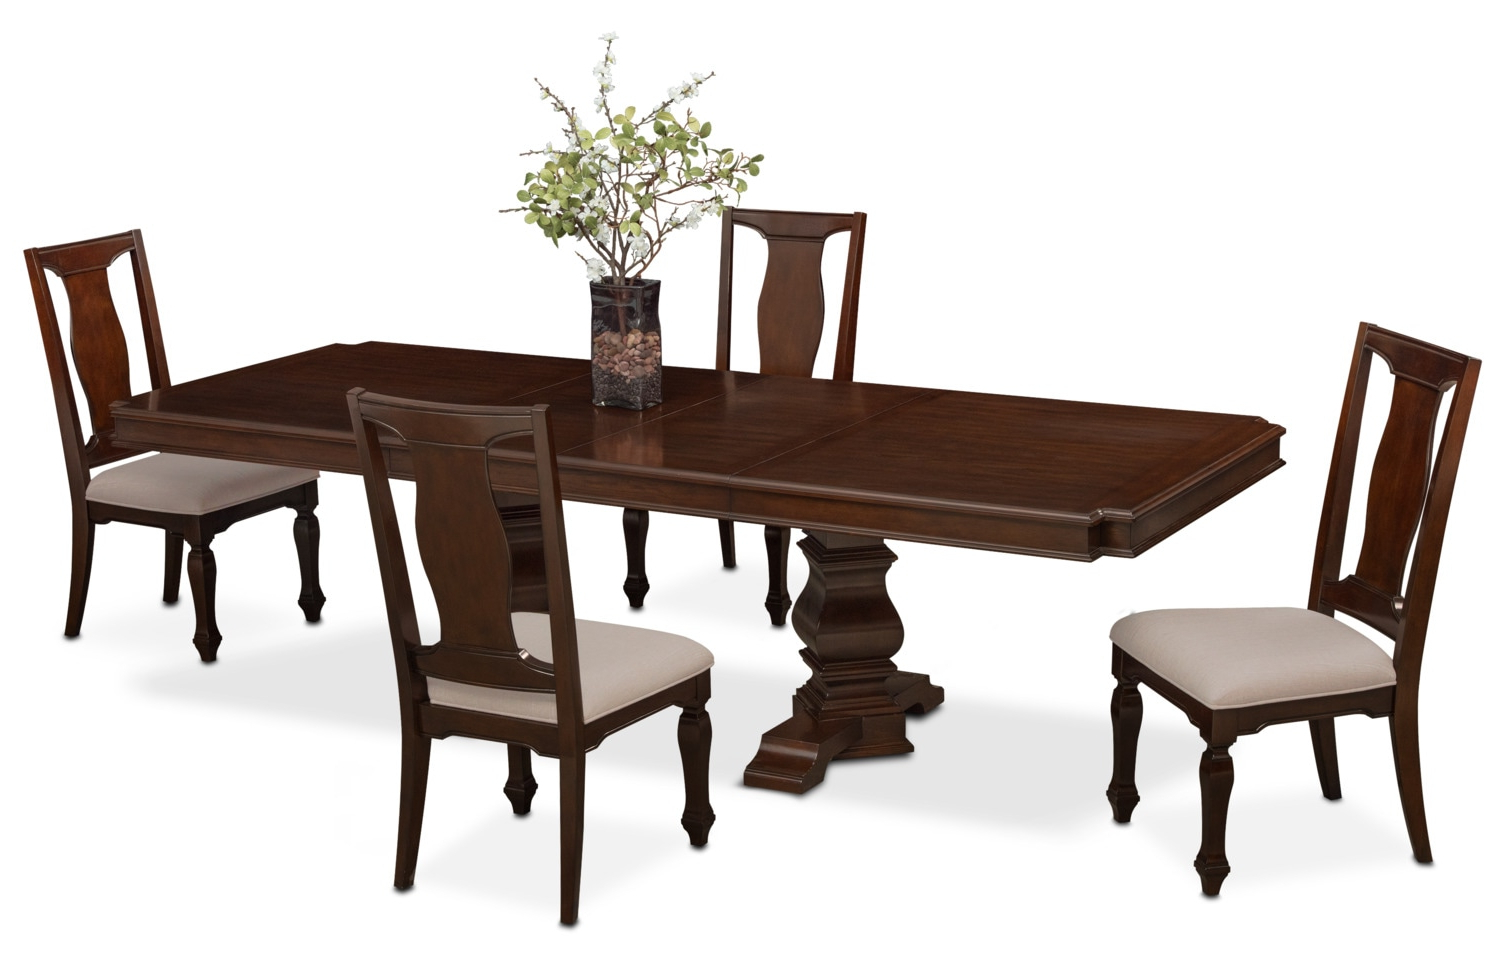 Vienna Rectangular Dining Table And 4 Dining Chairs Pertaining To Well Known Rectangular Dining Tables (View 22 of 25)